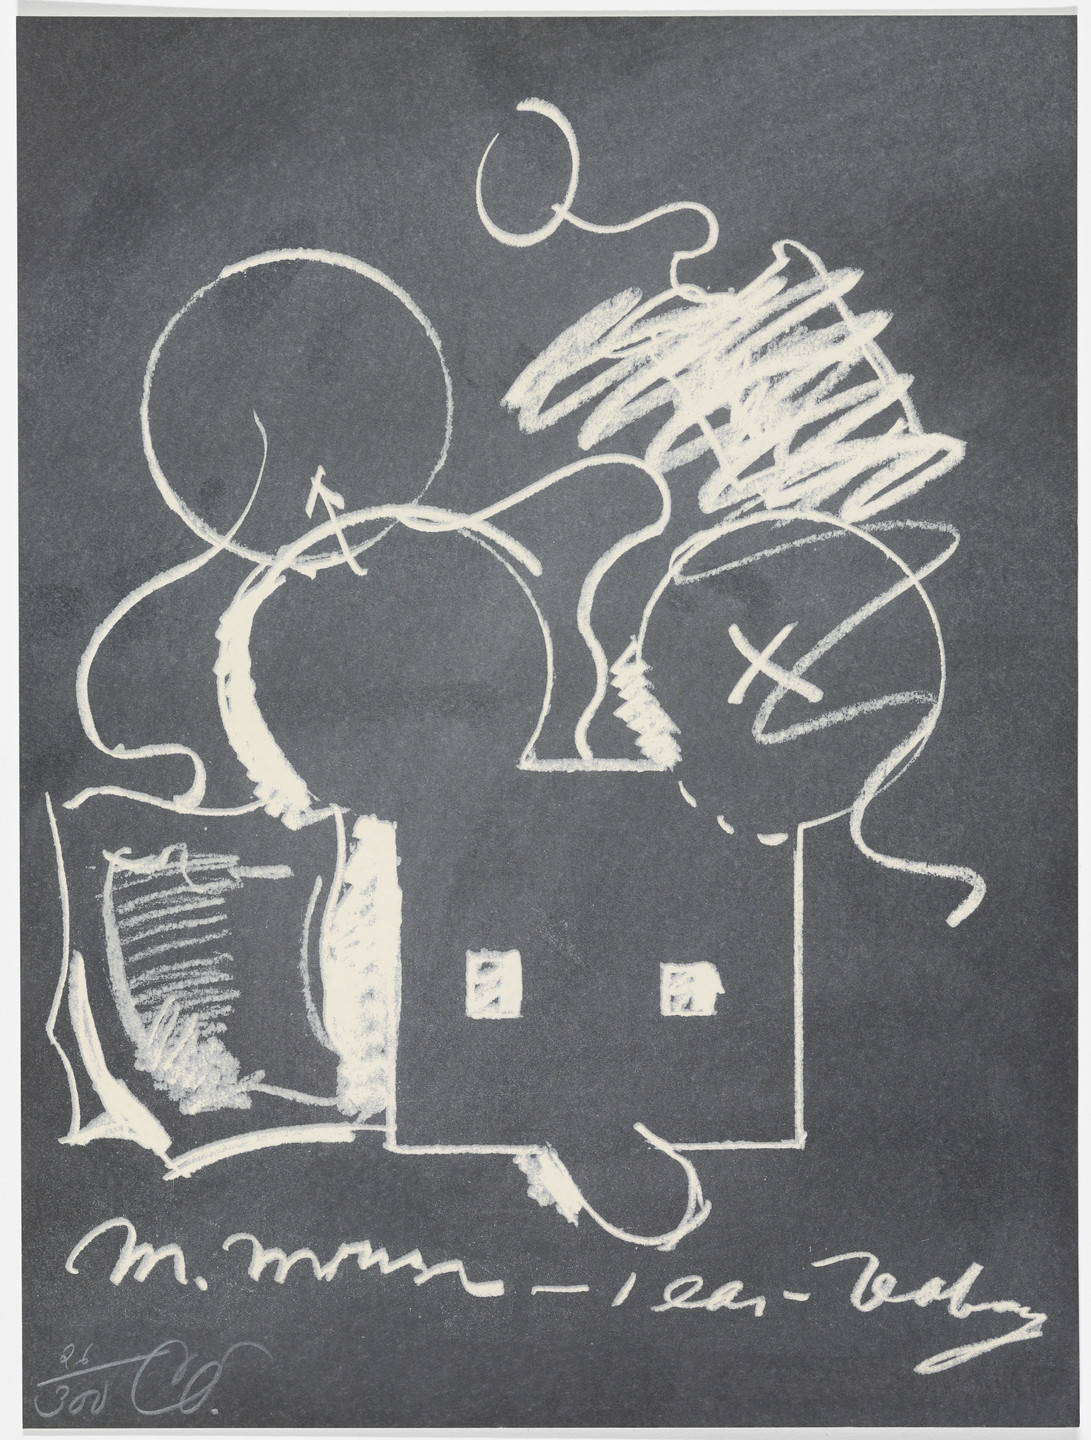 Claes Oldenburg. M. Mouse (with) 1 Ear (equals) Tea Bag Blackboard Version (1965) from The New York Collection for Stockholm. 1973